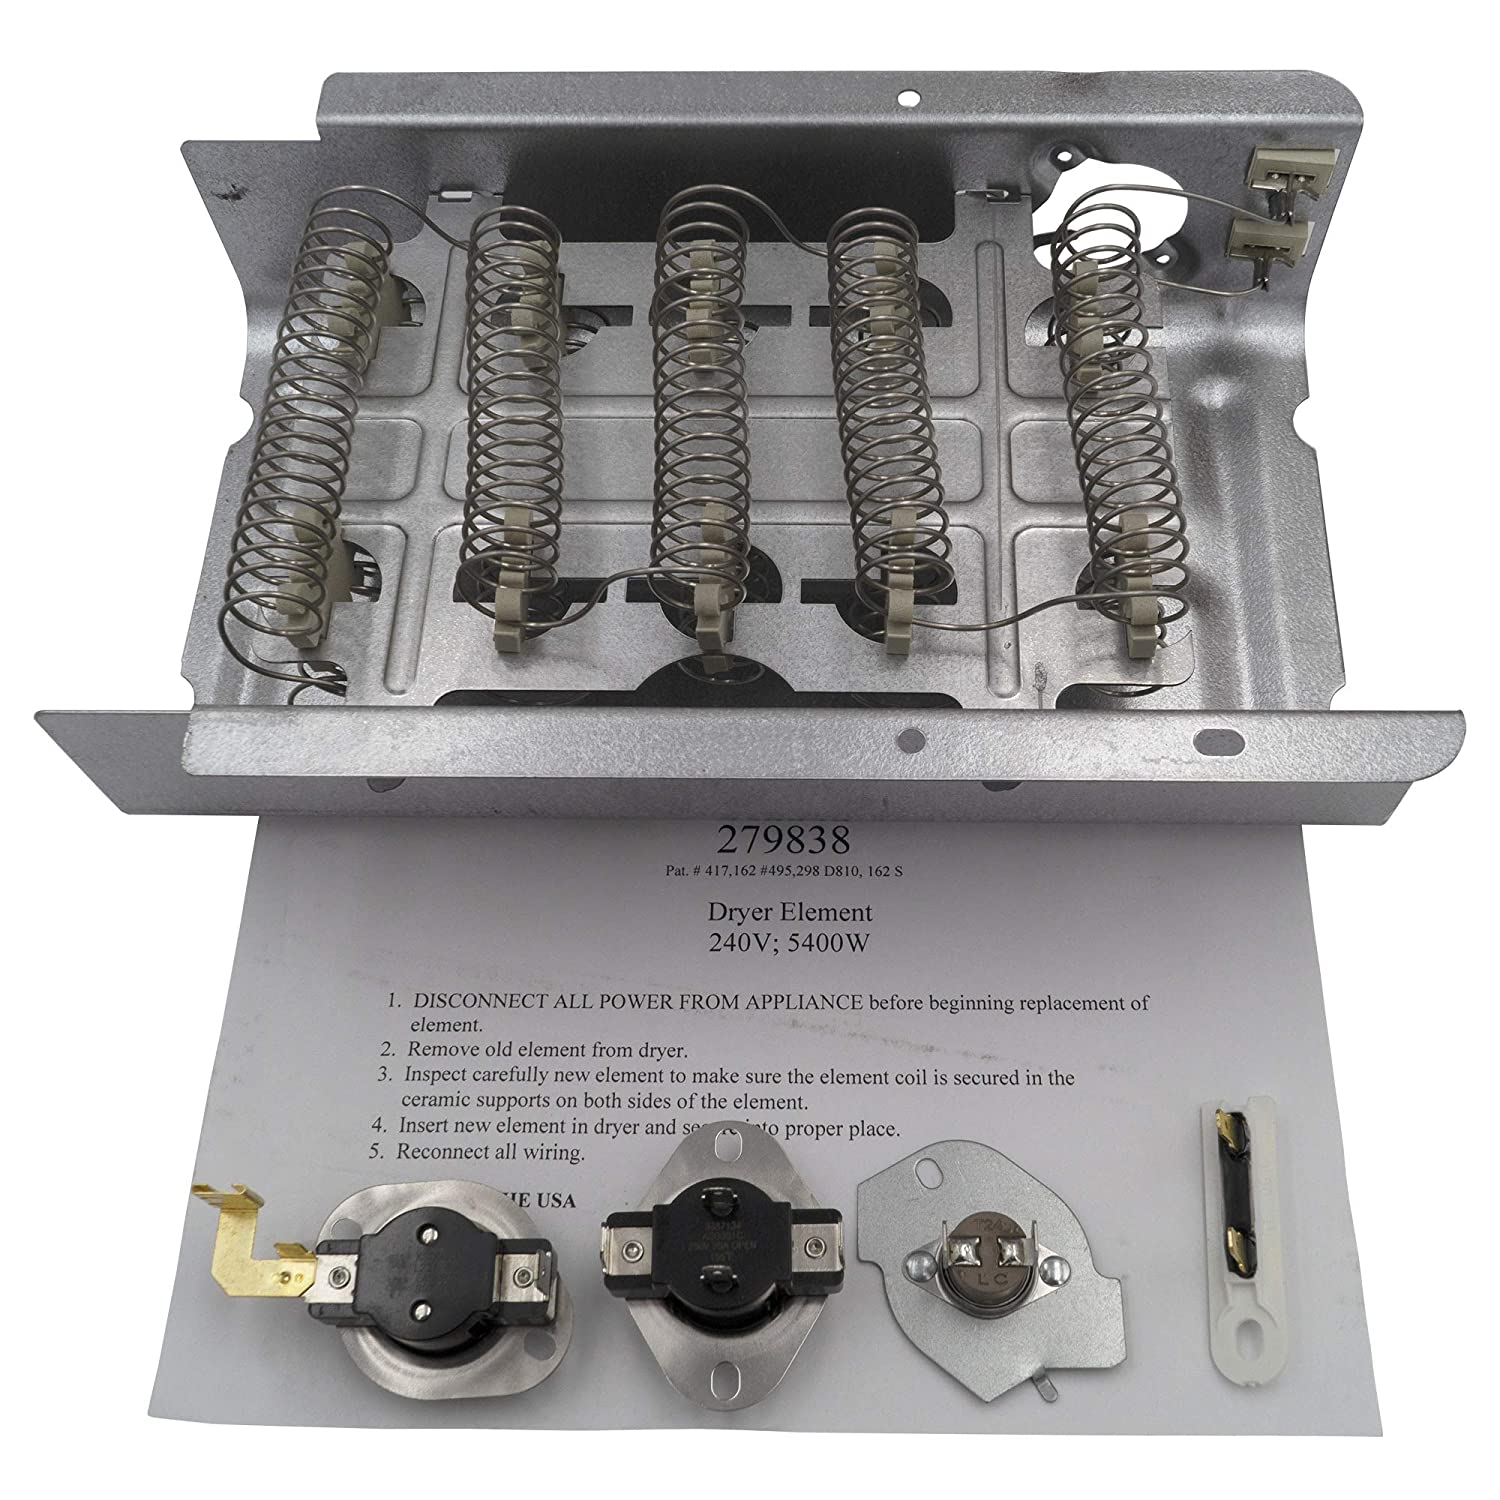 Supplying Demand 279838 Heating Element & Fuse 3392519 3977393 With Dryer Thermostats 3387134 3977767 5 Piece Kit Compatible with Whirlpool